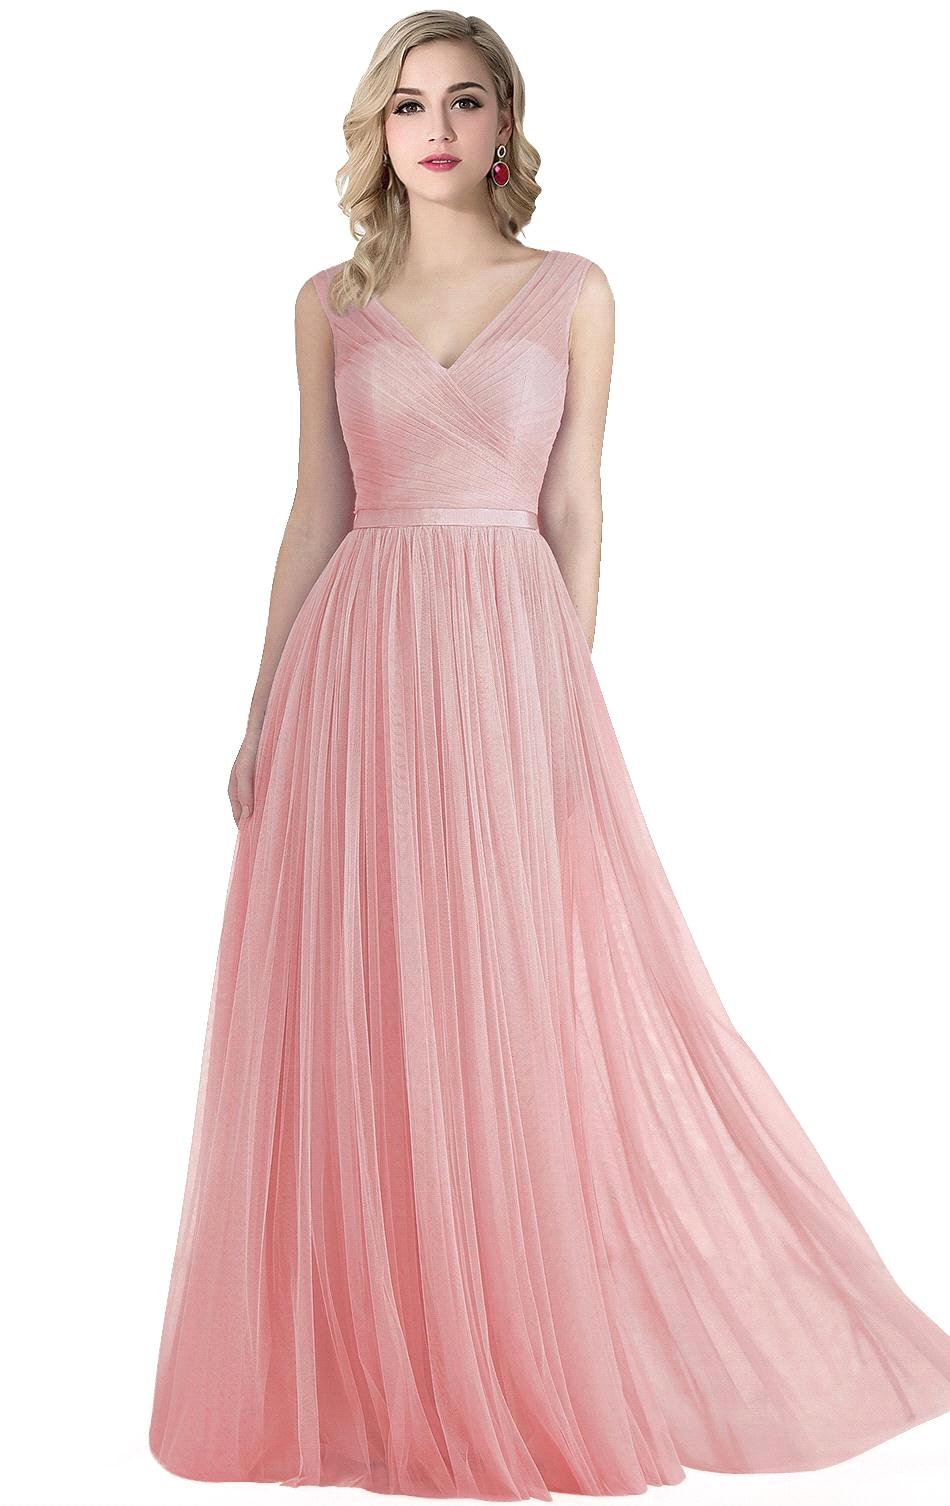 Compare Prices on Long Formal Dresses under 50- Online Shopping ...